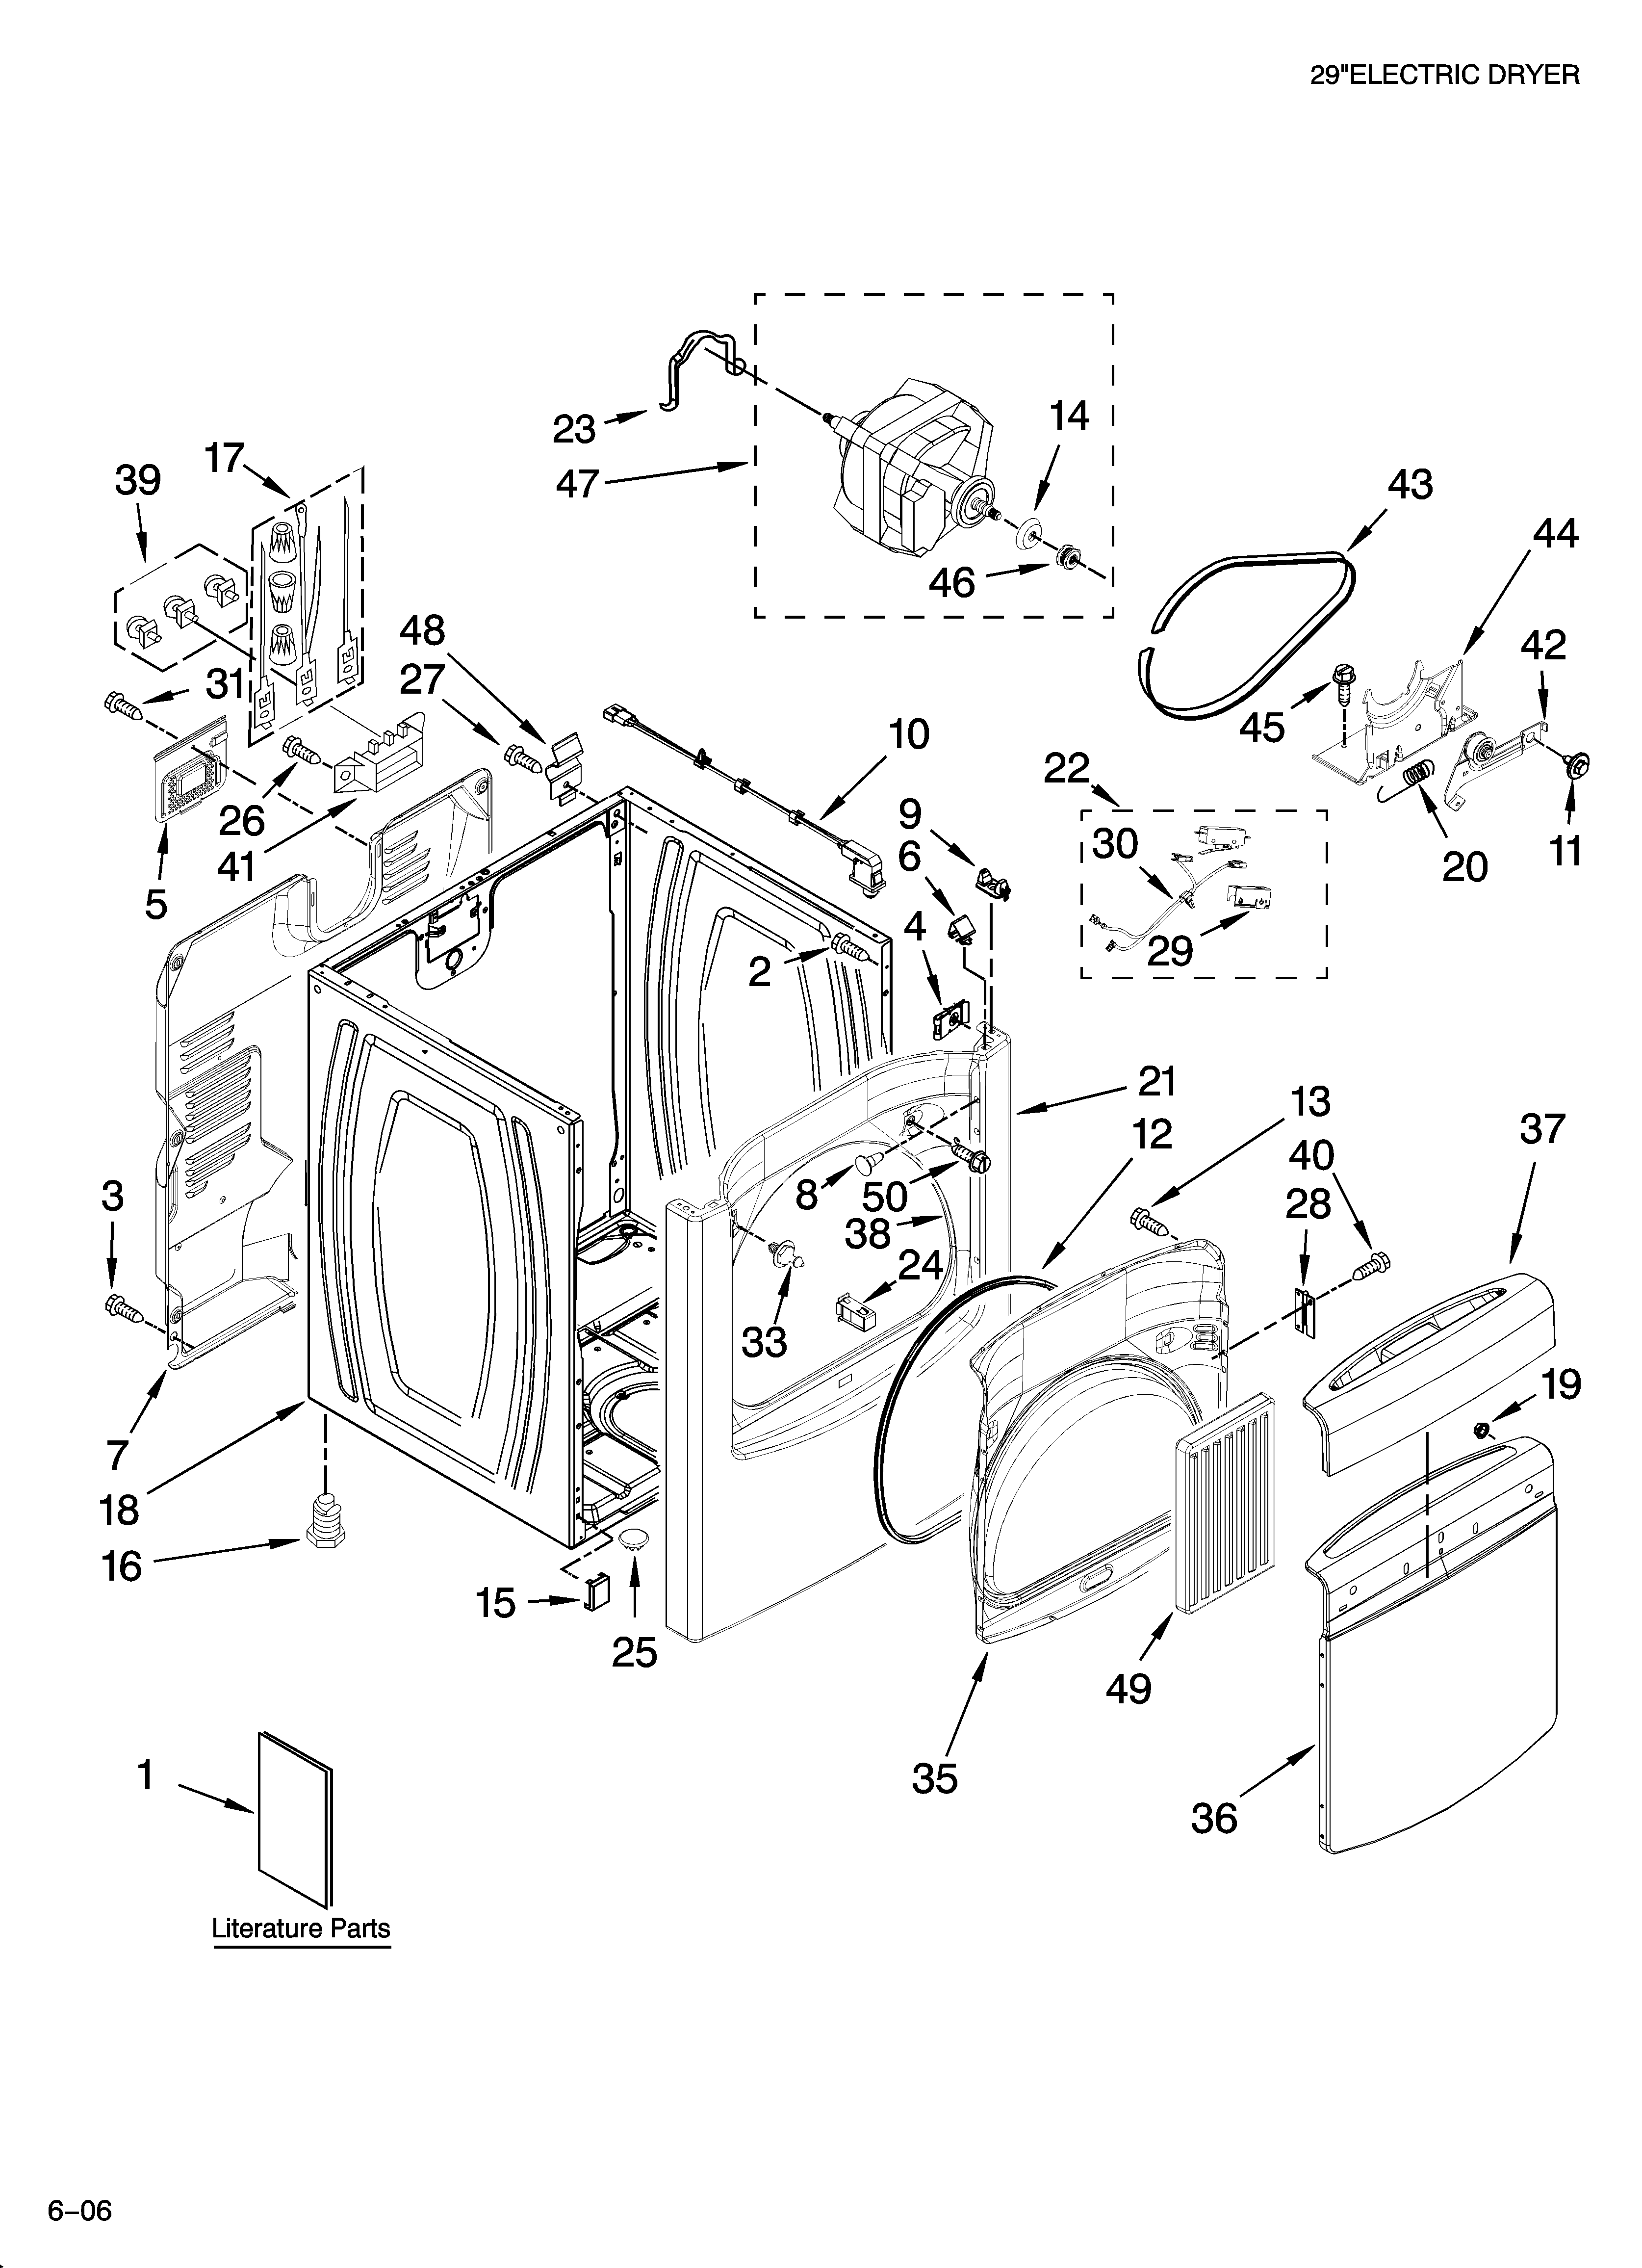 WHIRLPOOL RESIDENTIAL DRYER Parts | Model WED6200SW0 ...